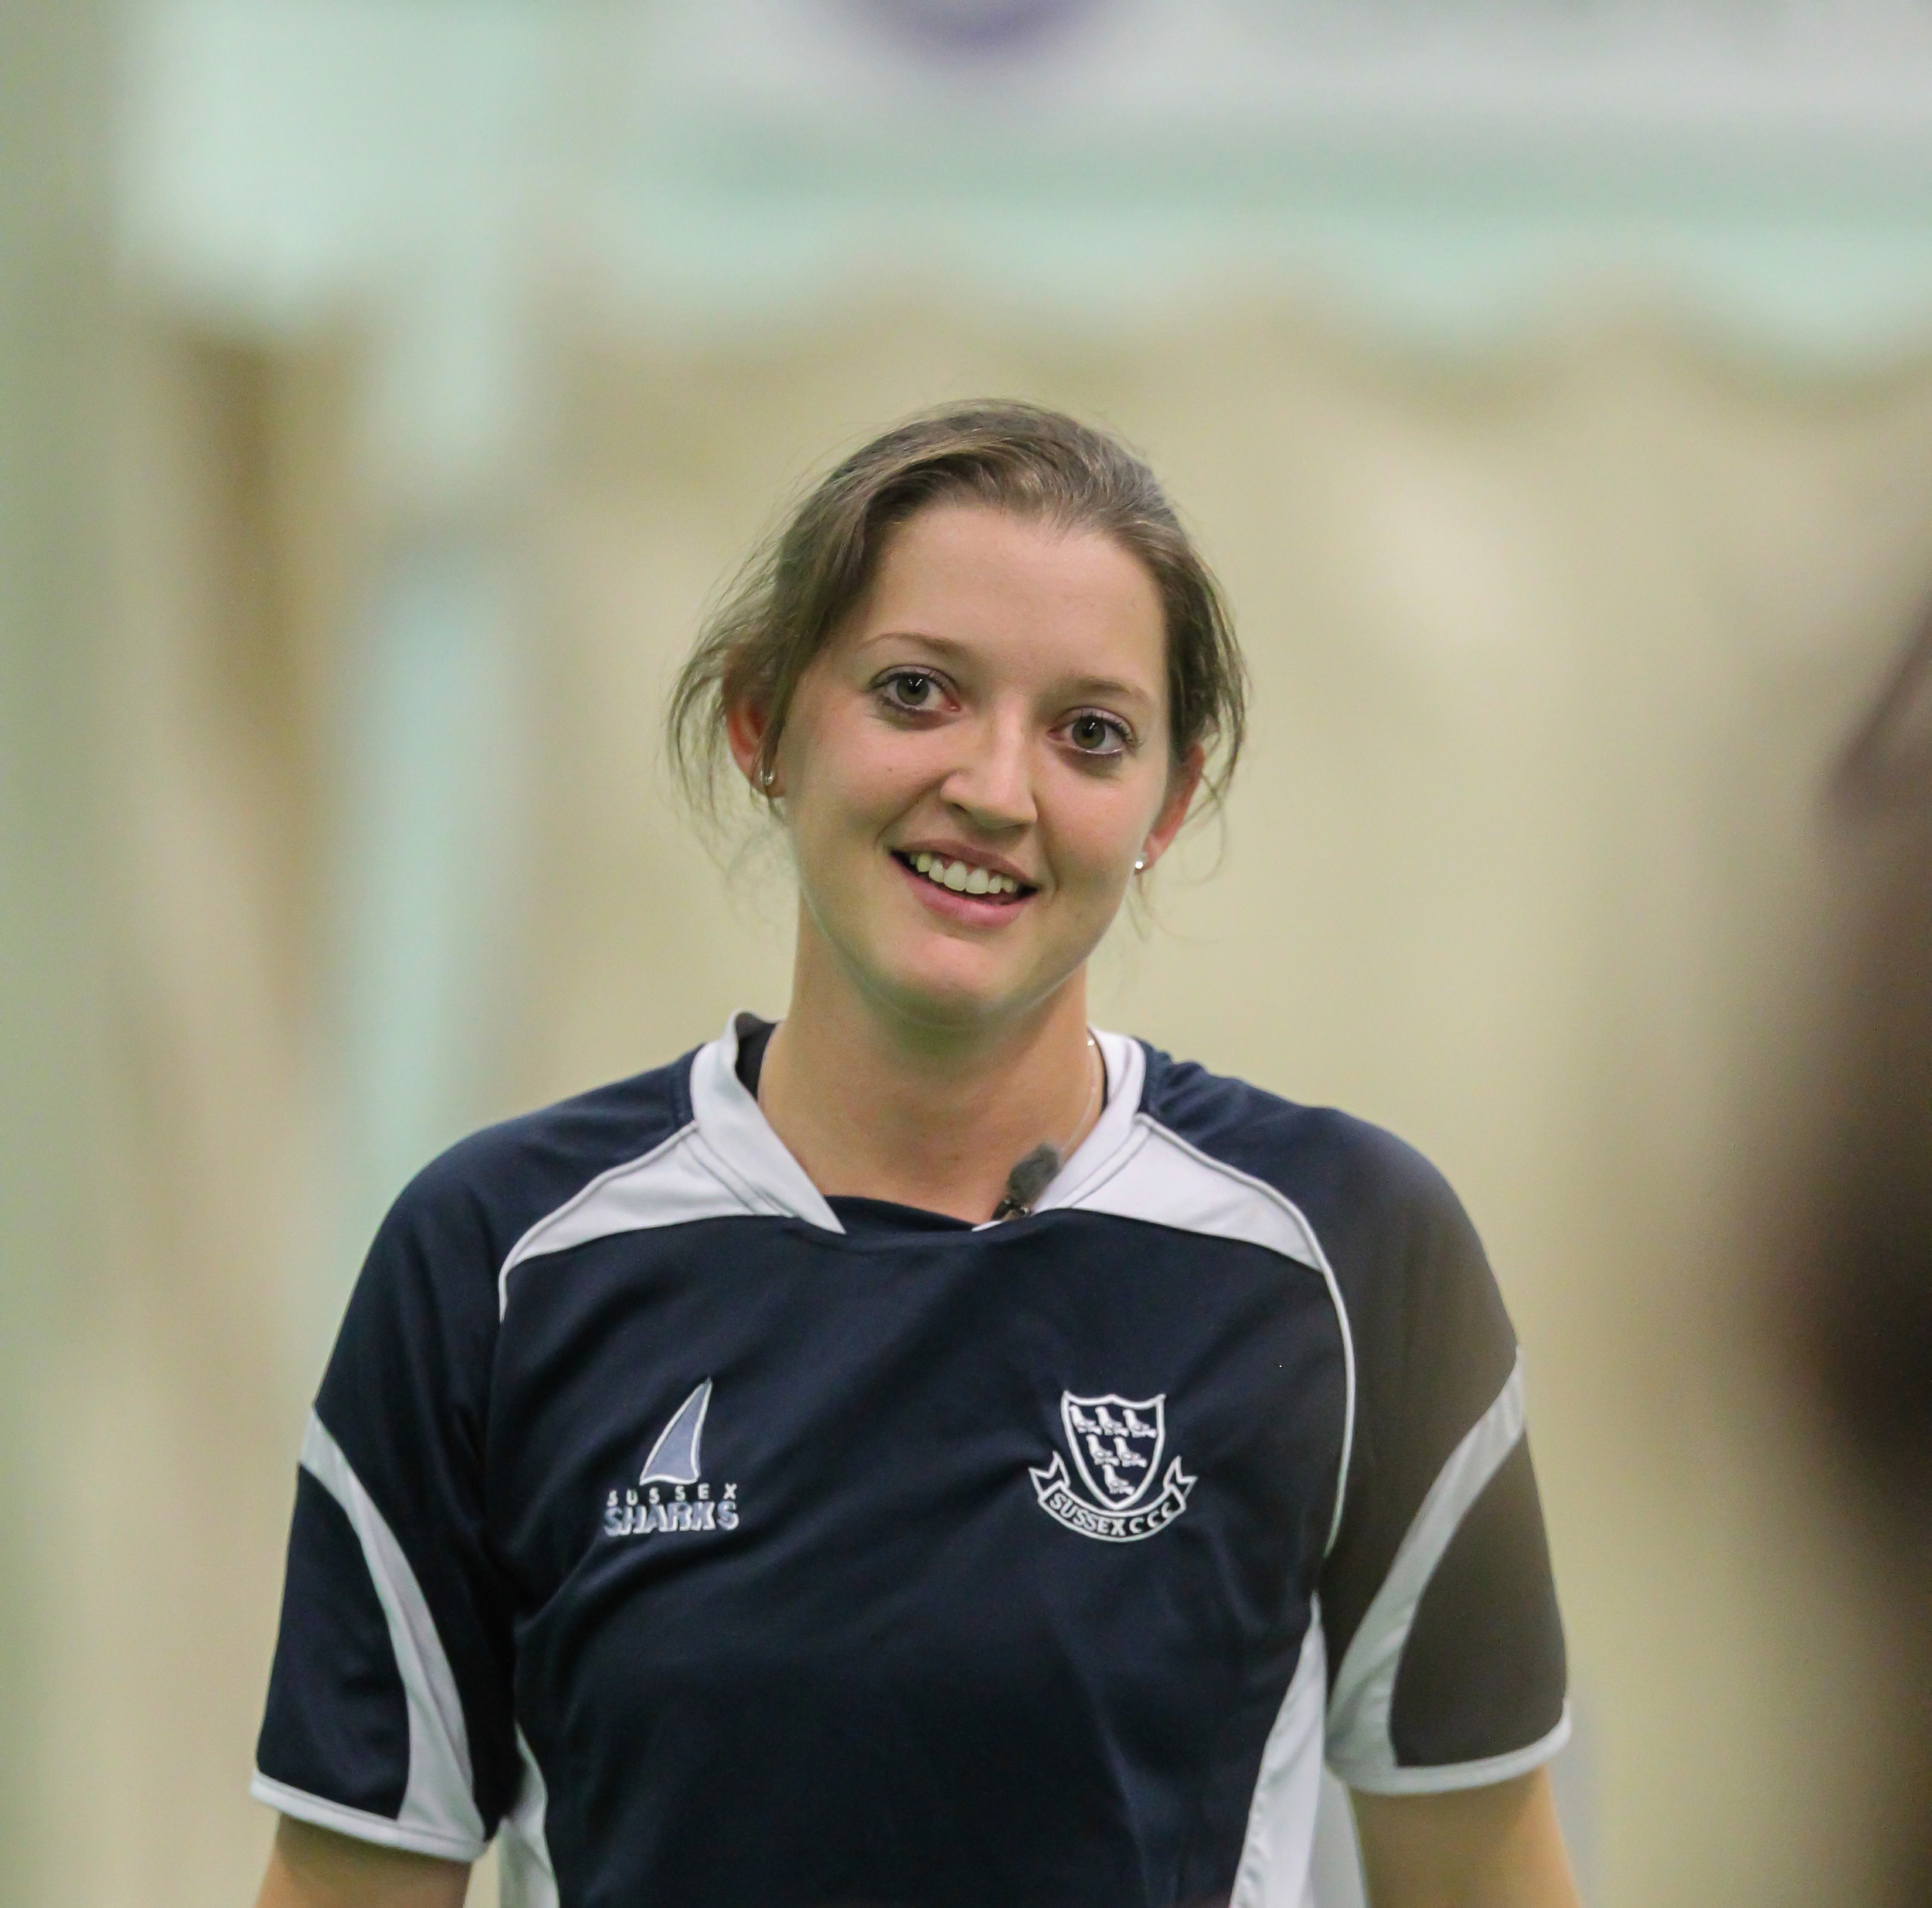 Guernsey's women cricketers had a visit from England and Sussex's Sarah Taylor ….